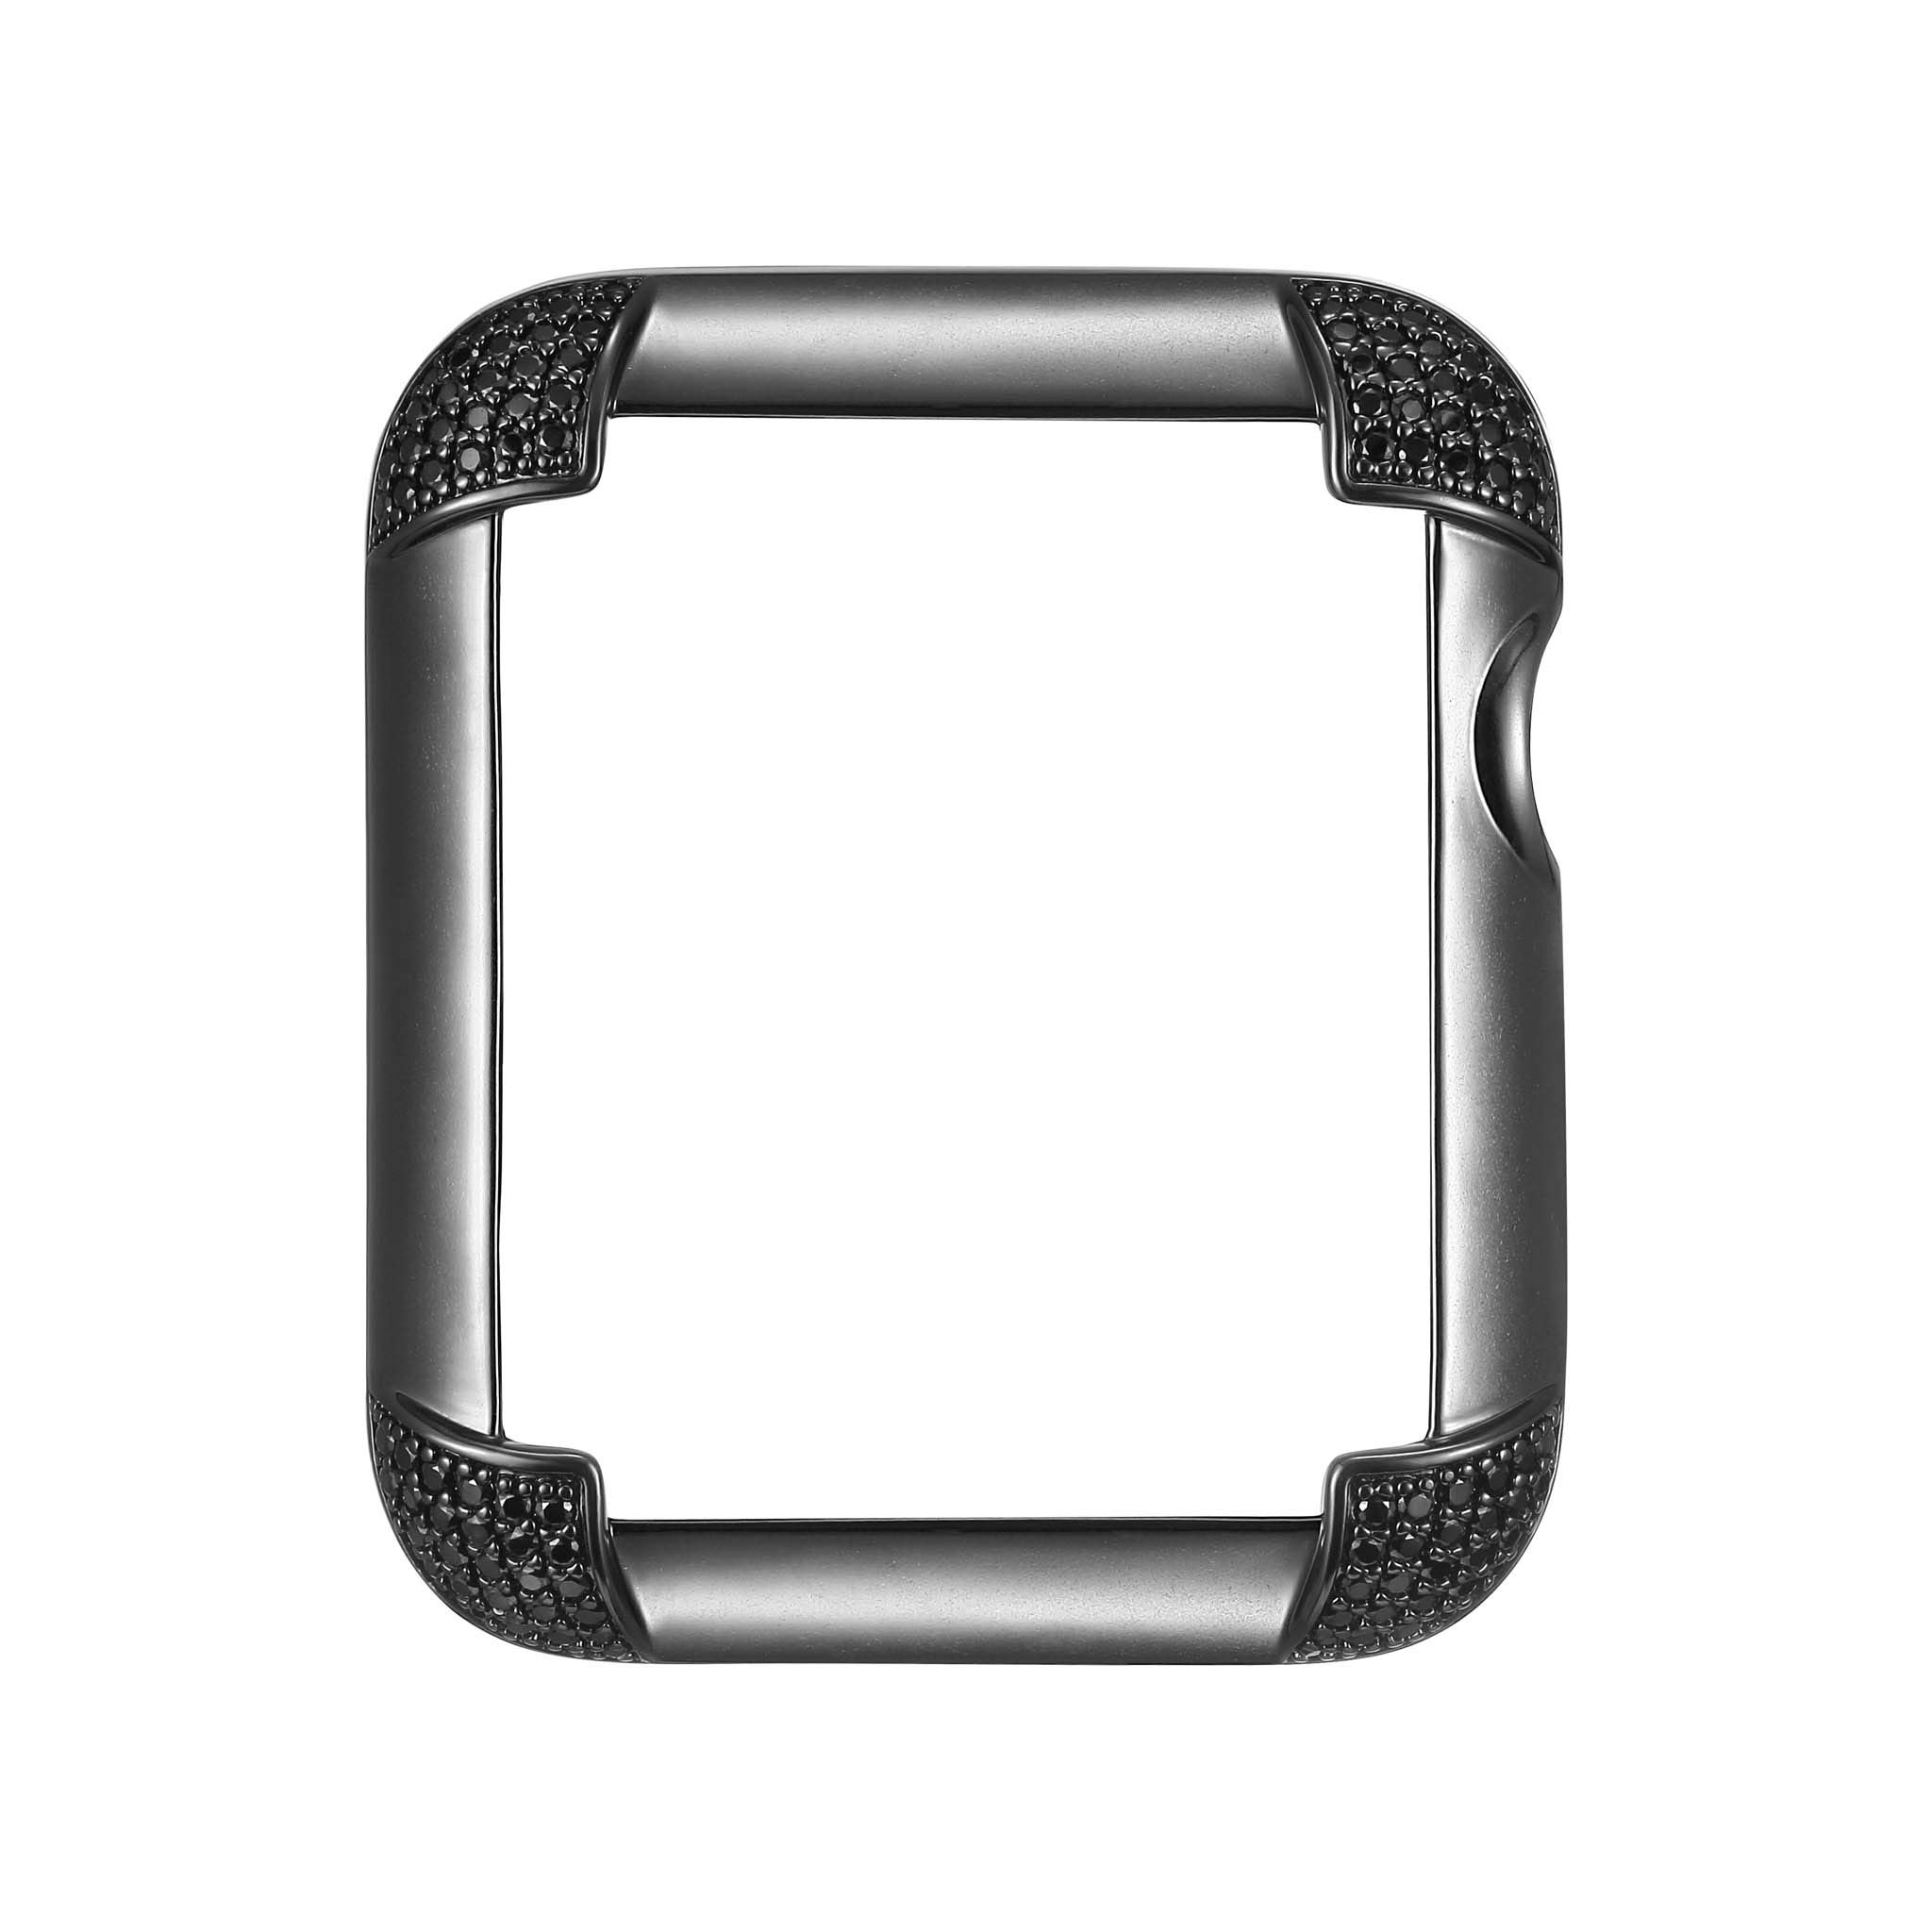 Matte Black Rhodium Plated Jewelry-Style Apple Watch Case with Genuine Spinel Pavé Corners - Large (Fits 42mm iWatch) by SkyB (Image #1)